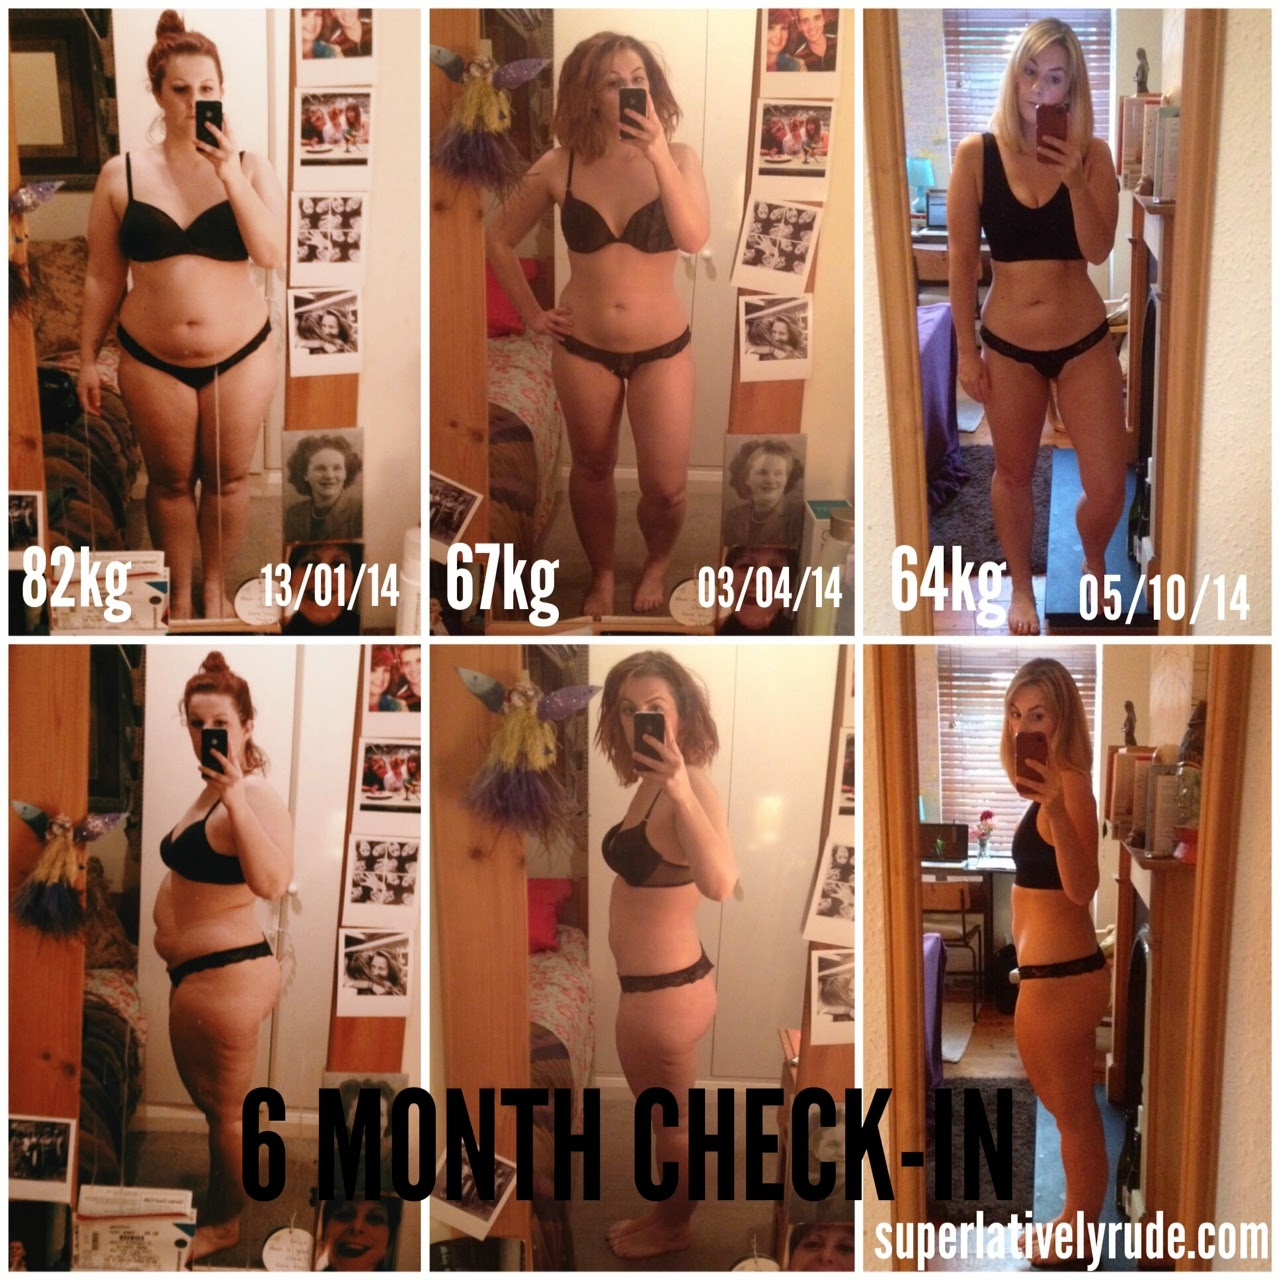 A Blog post about Laura Jane Williams and her weight loss journey, 6 months on.